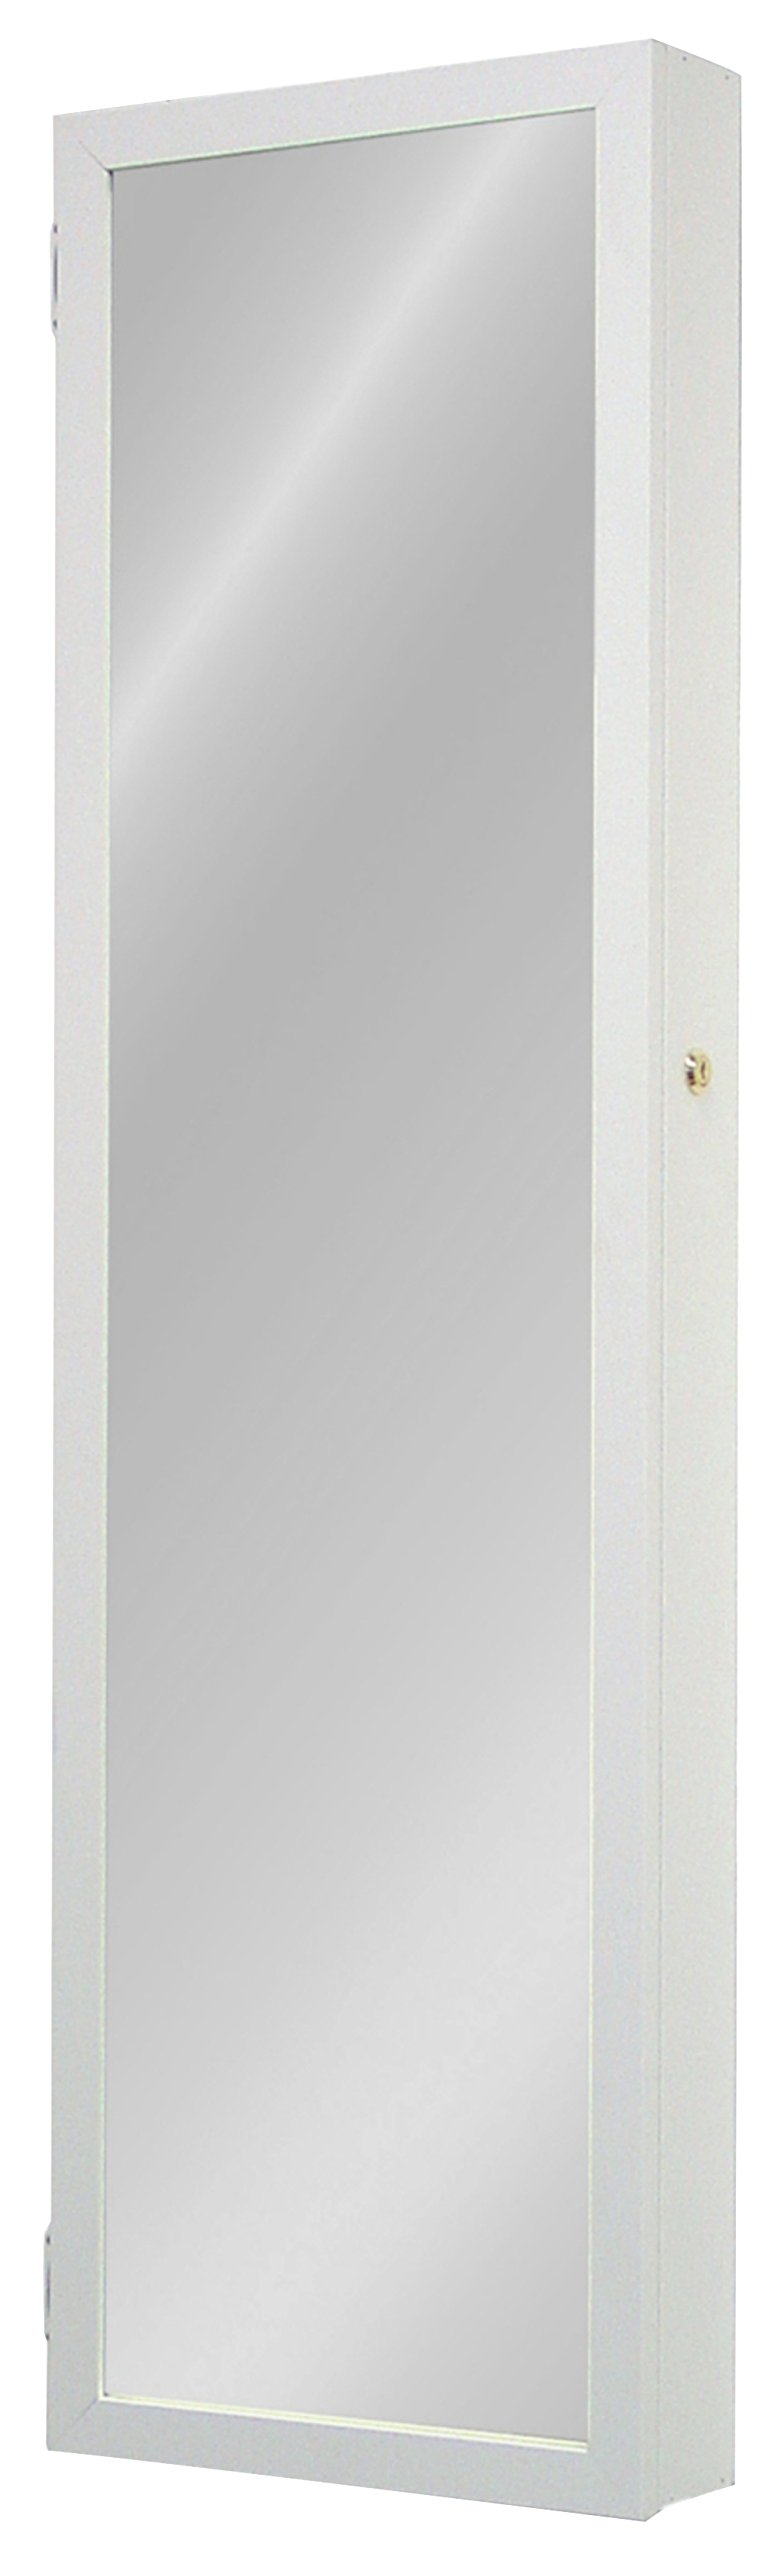 Plaza Astoria Wall/Door-Mount Jewelry Armoire, White by Plaza Astoria (Image #2)